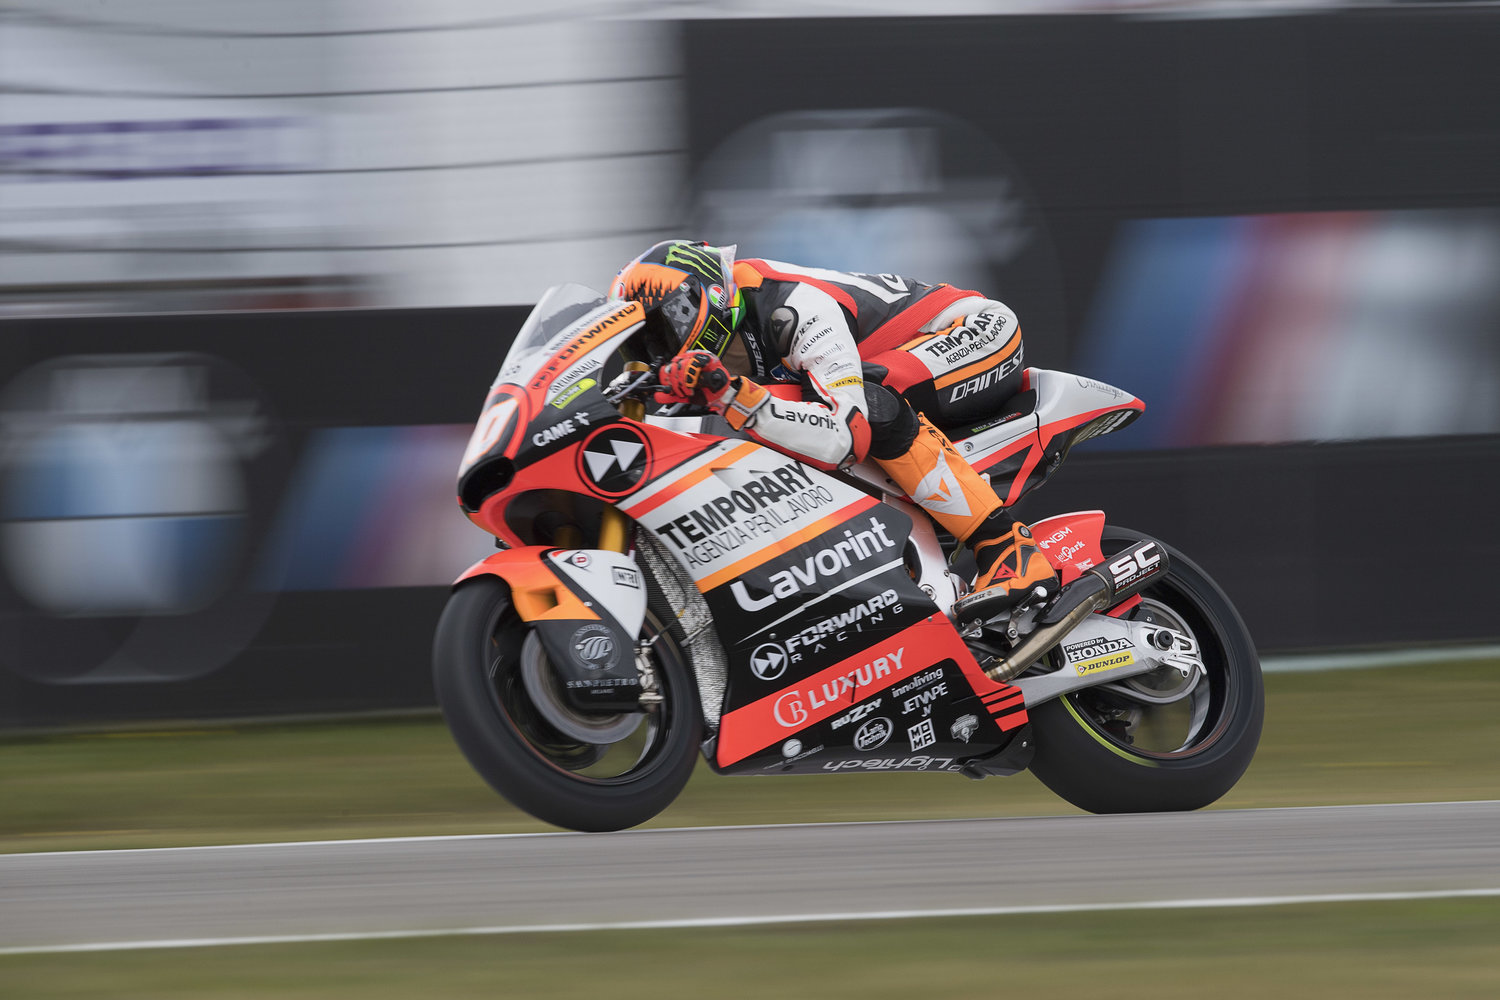 Marini keen to get back to the front, learning weekend for Fuligni at Sachsenring